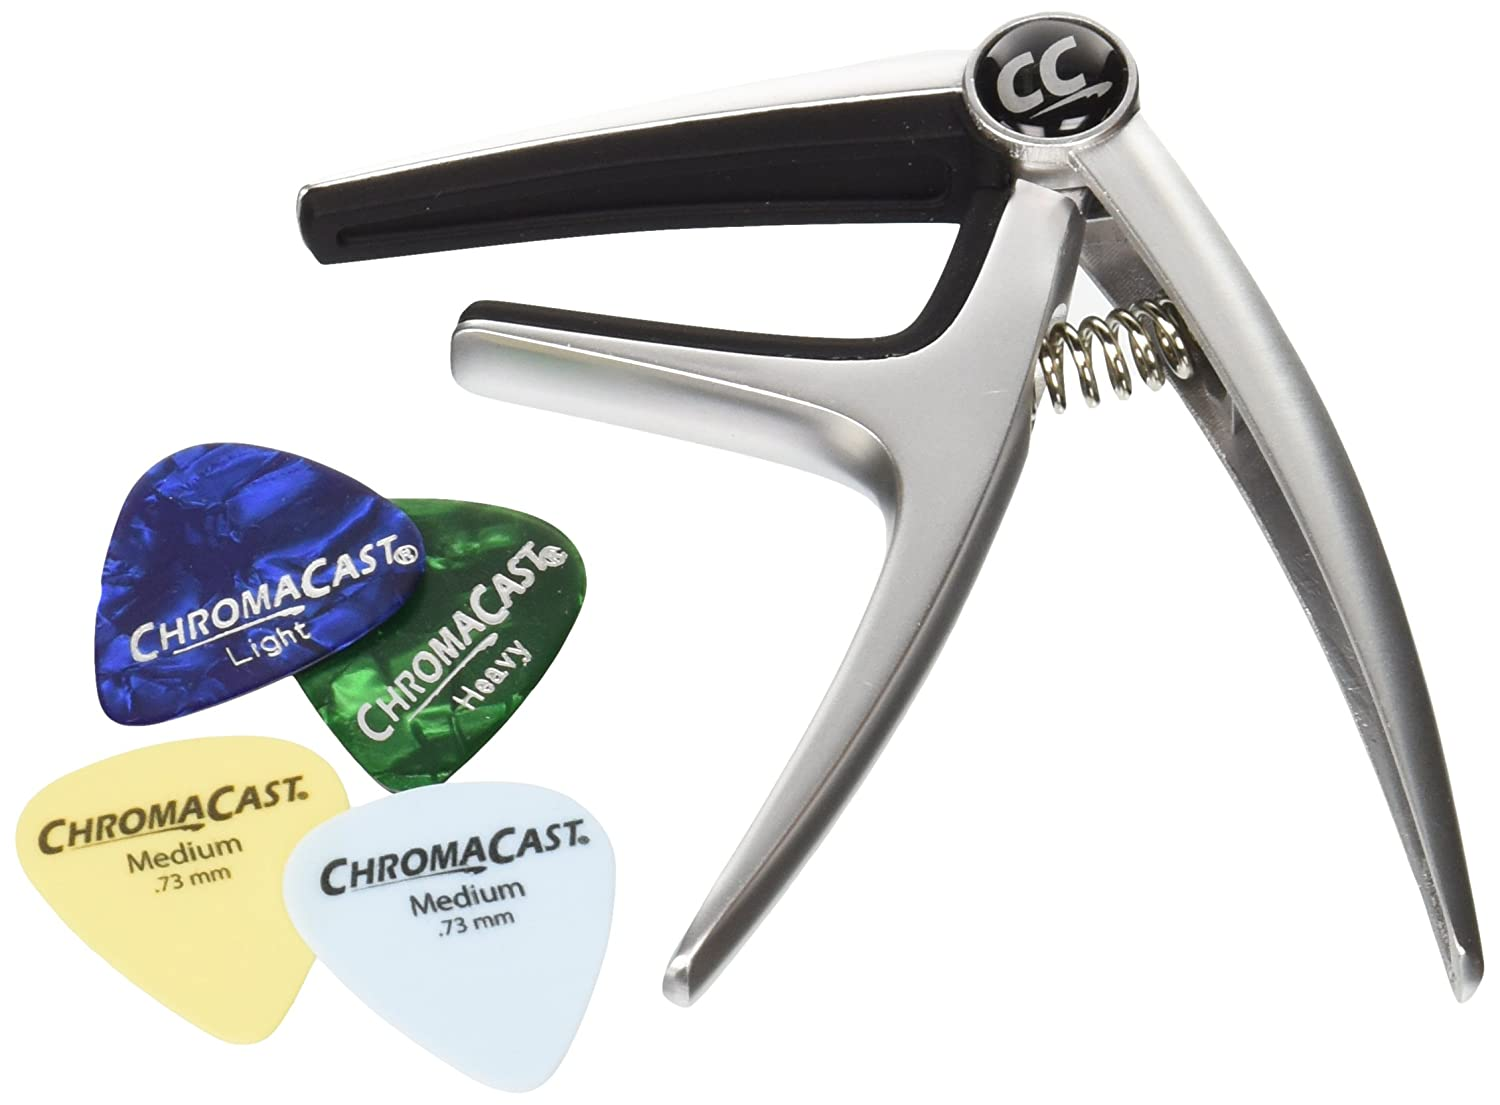 ChromaCast Single Handed Quick Change 6-String Guitar Capo for Acoustic & Electric Guitars with Pick Sampler CC-GCP6-SIL-KIT